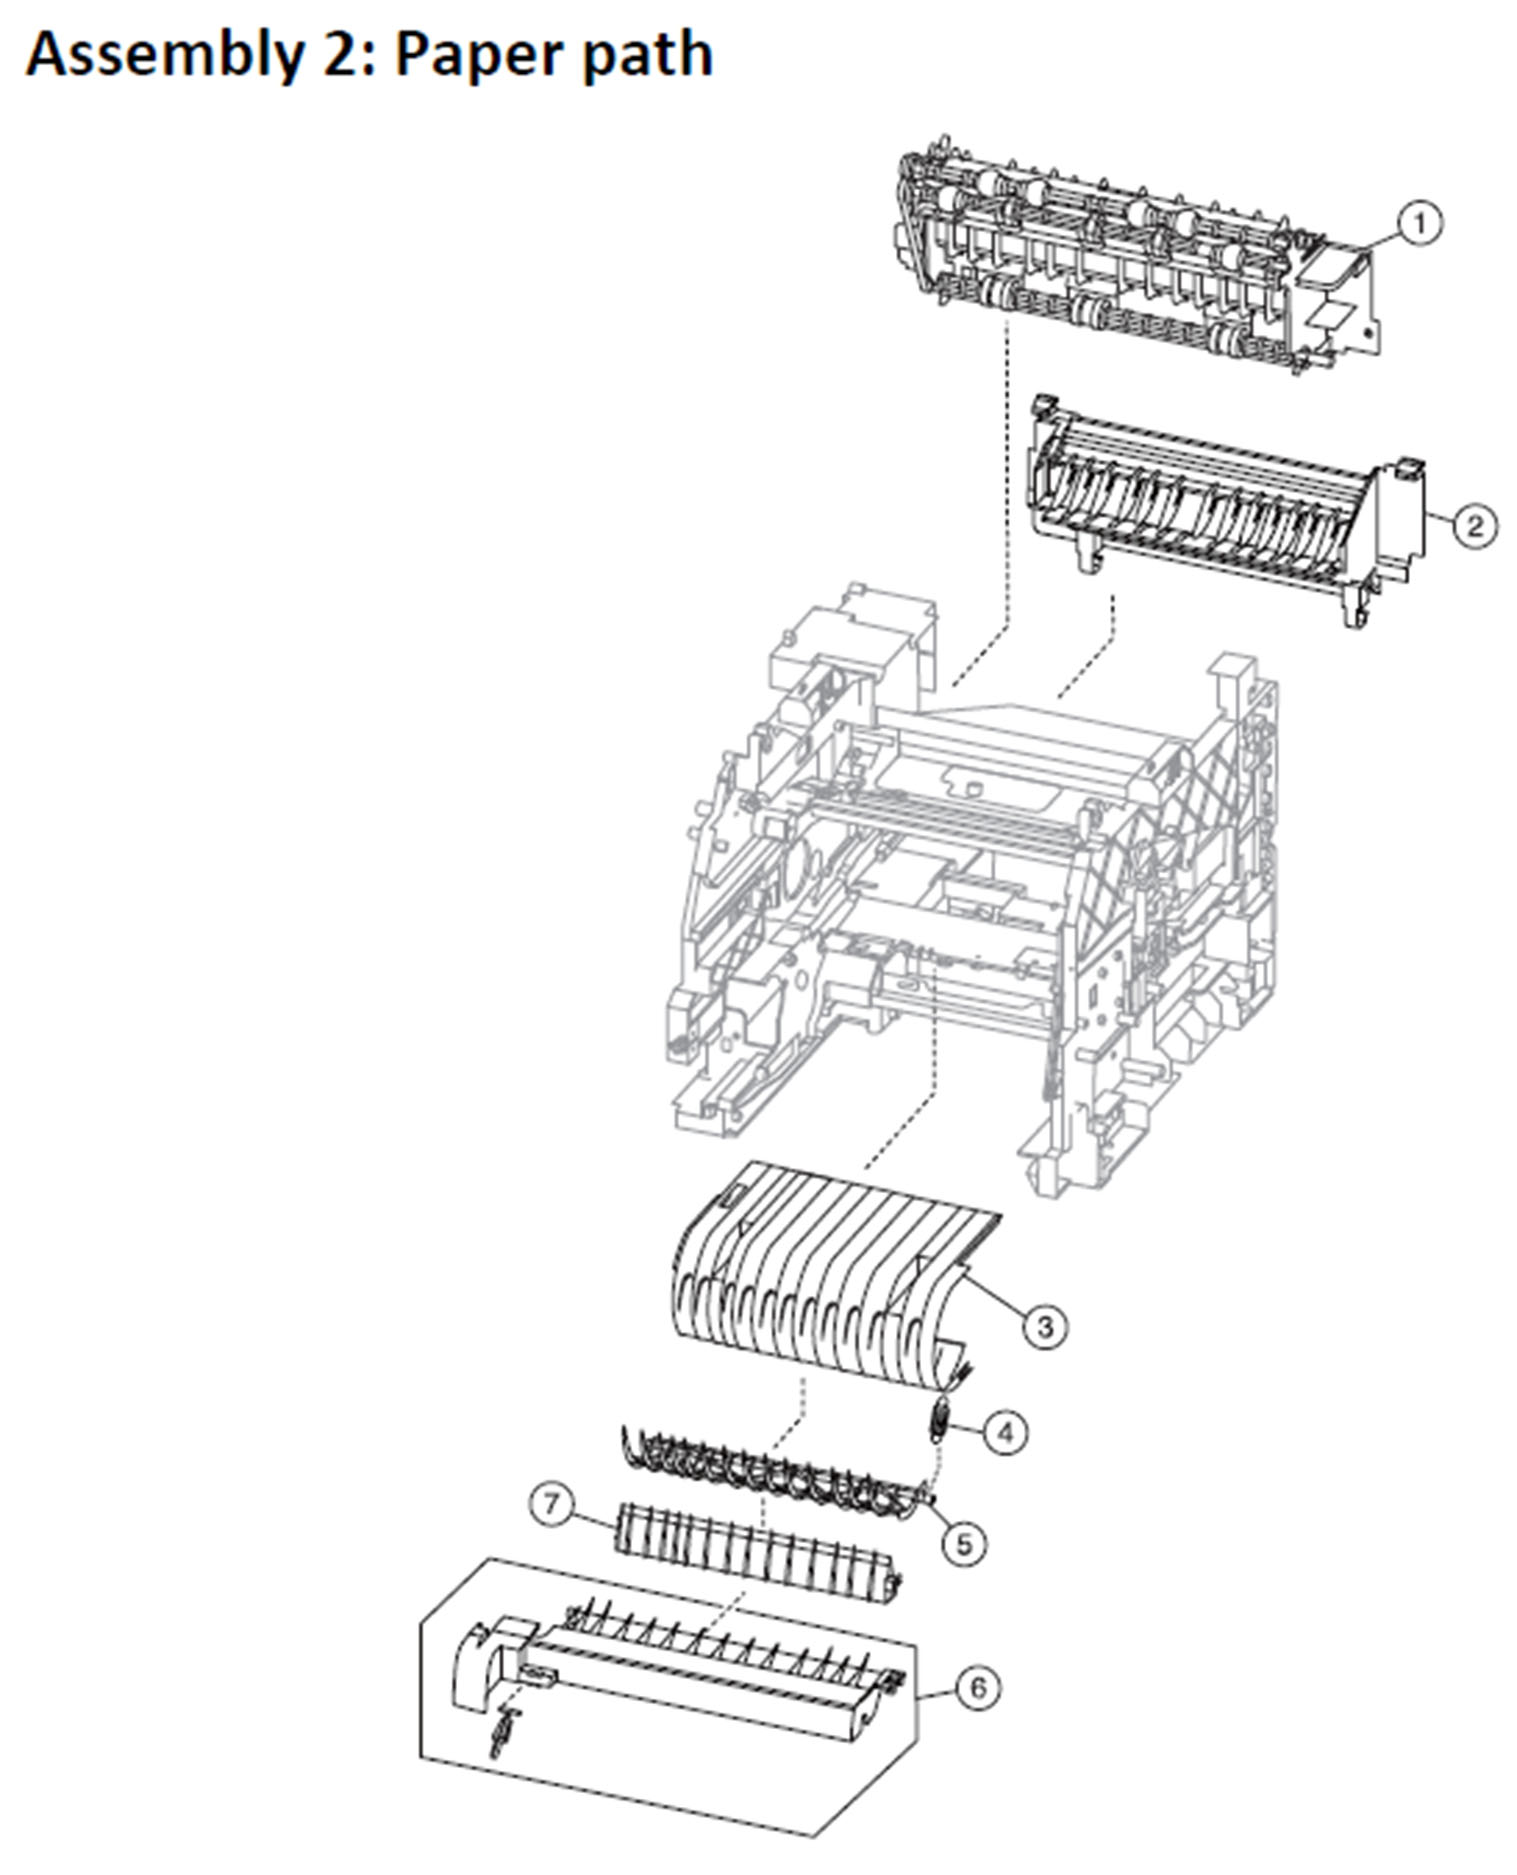 Lexmark MS810 Assembly 2: Paper Path